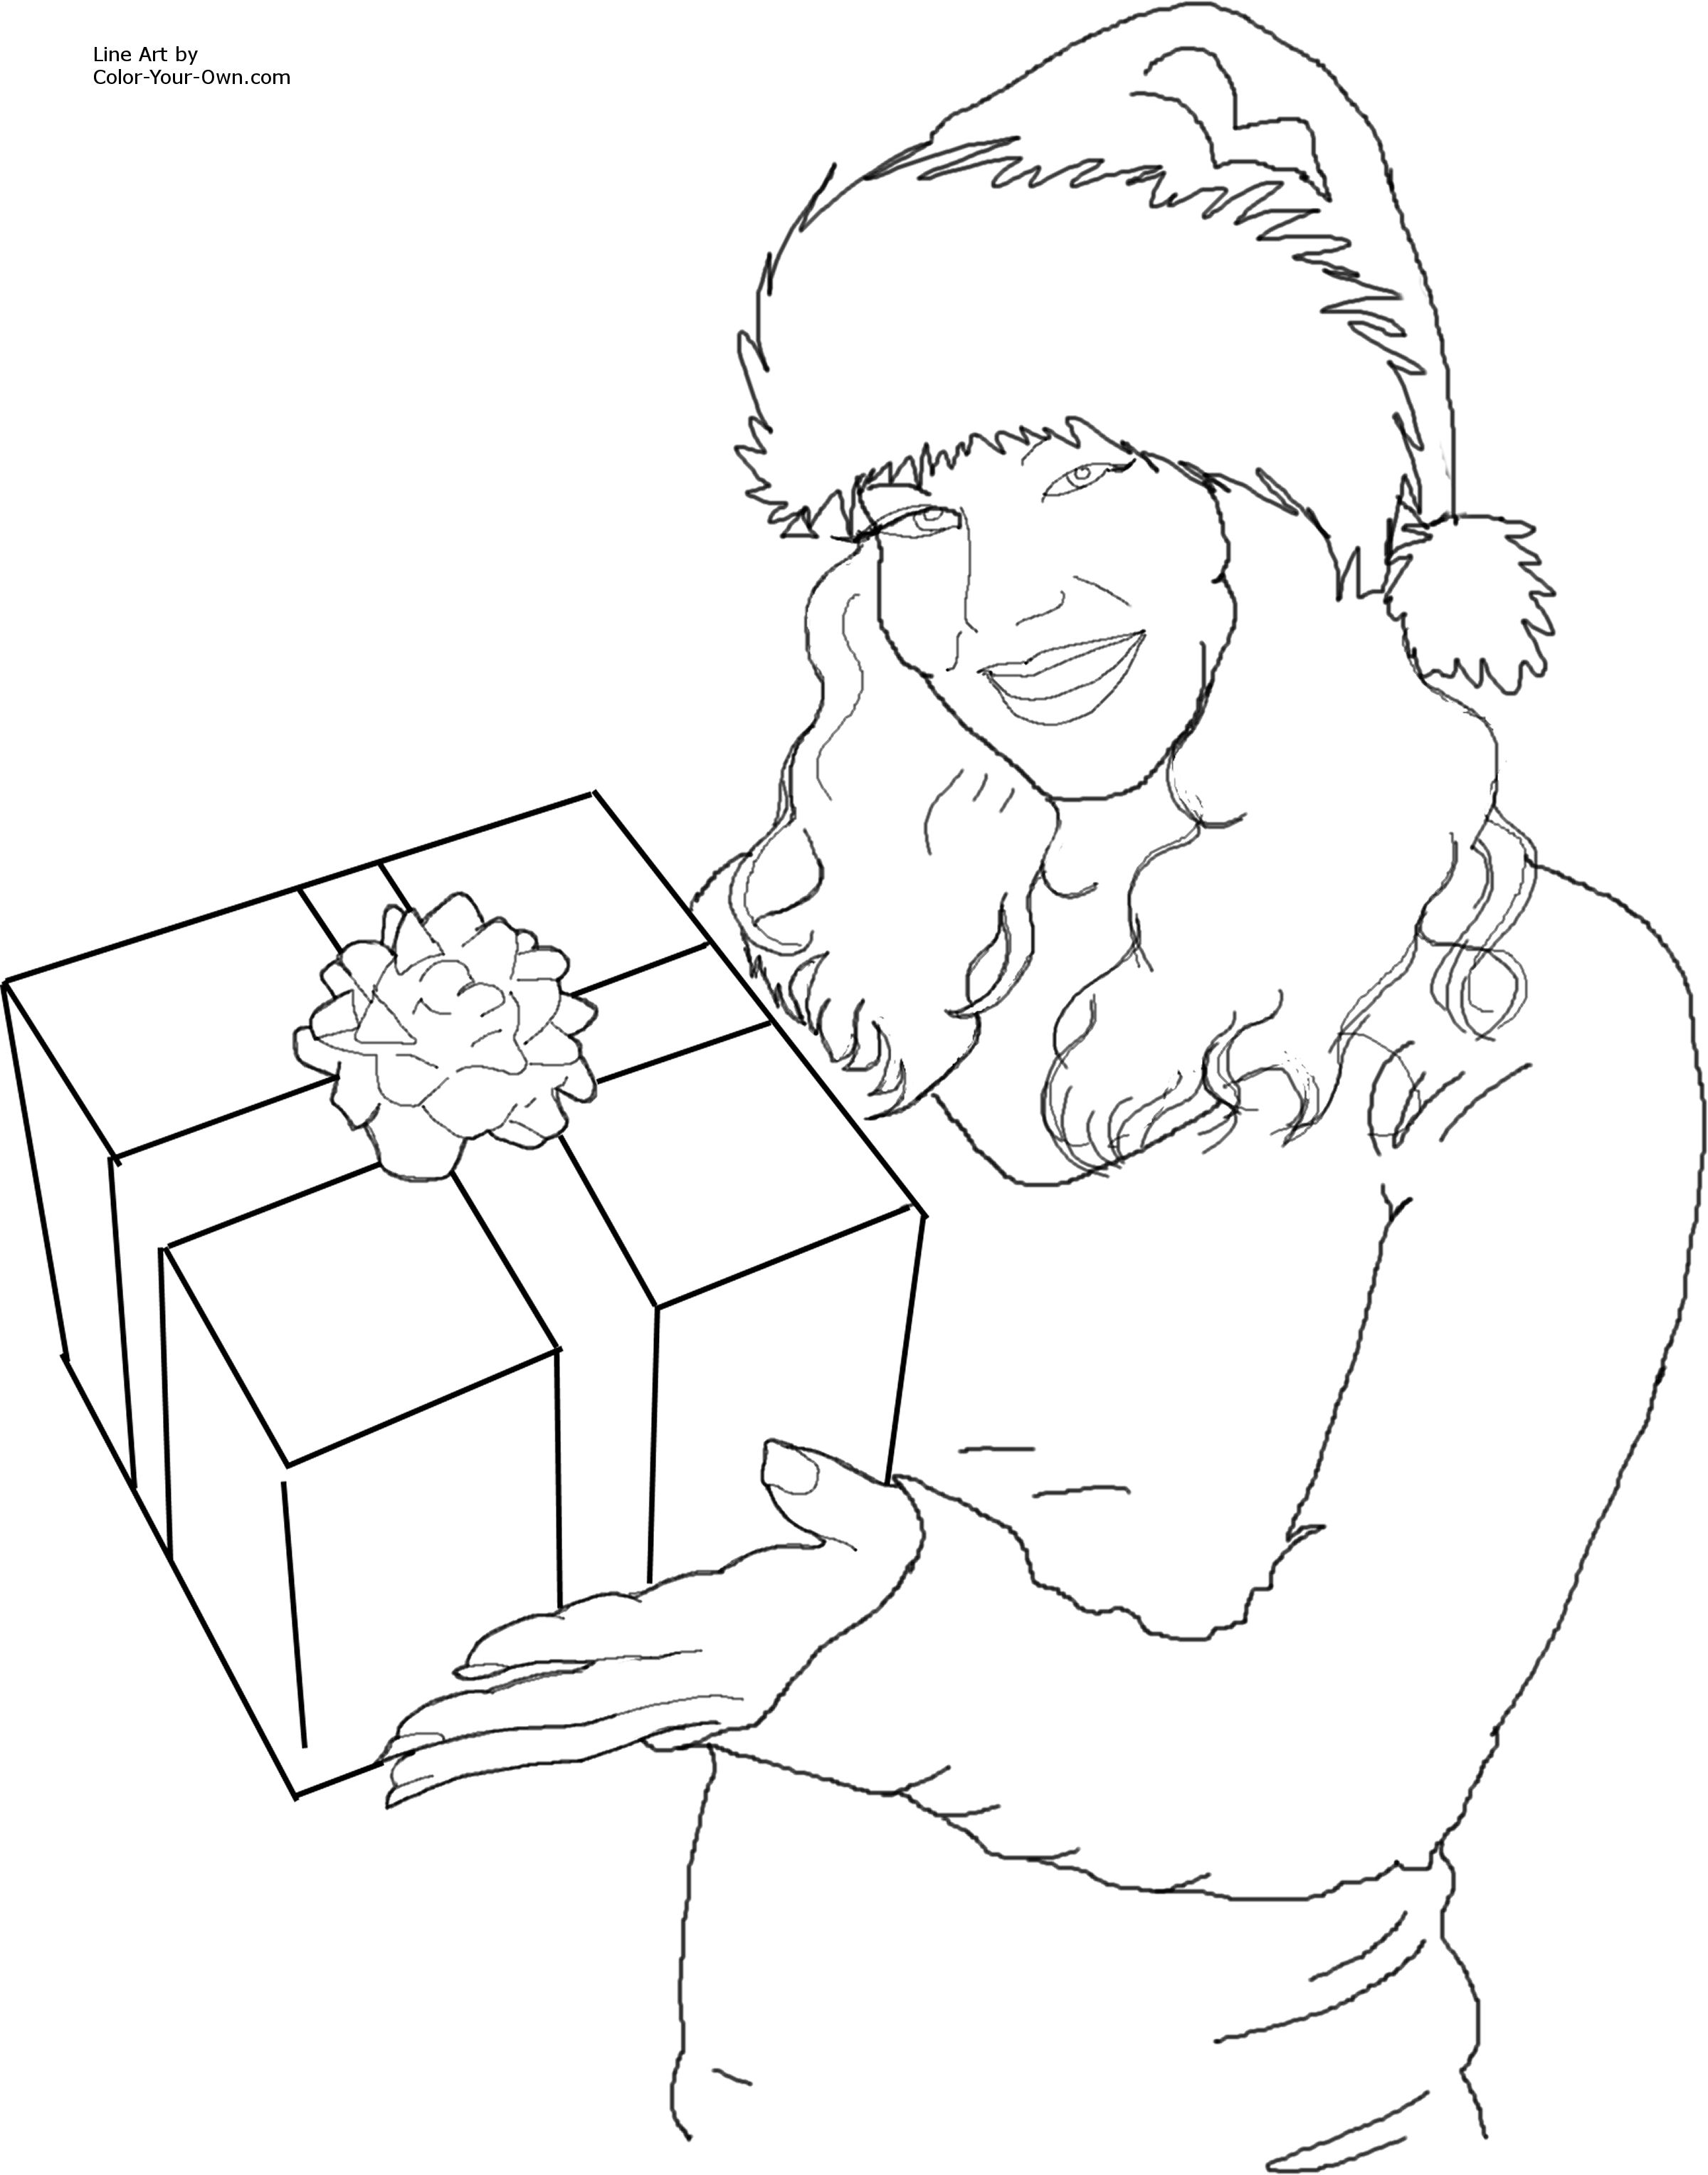 Click here for the free printable coloring page for 8 5 by 11 inch paper then click print on your browser